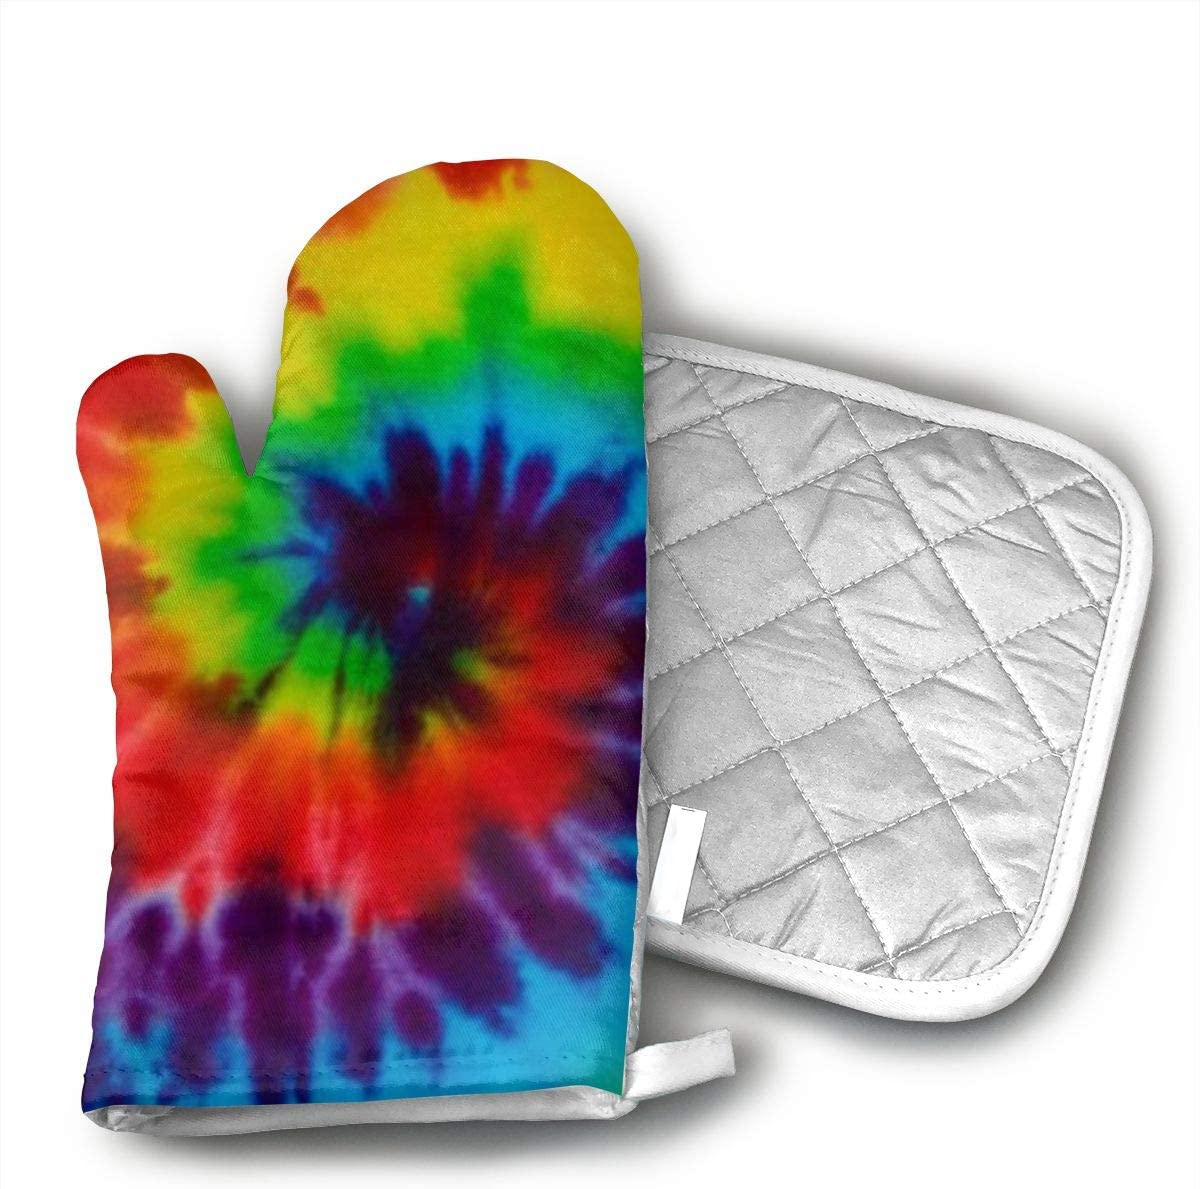 HAIQLK Tie Dye Oven Mitts for Kitchen Heat Resistant, Oven Gloves for BBQ Cooking Baking, Grilling,